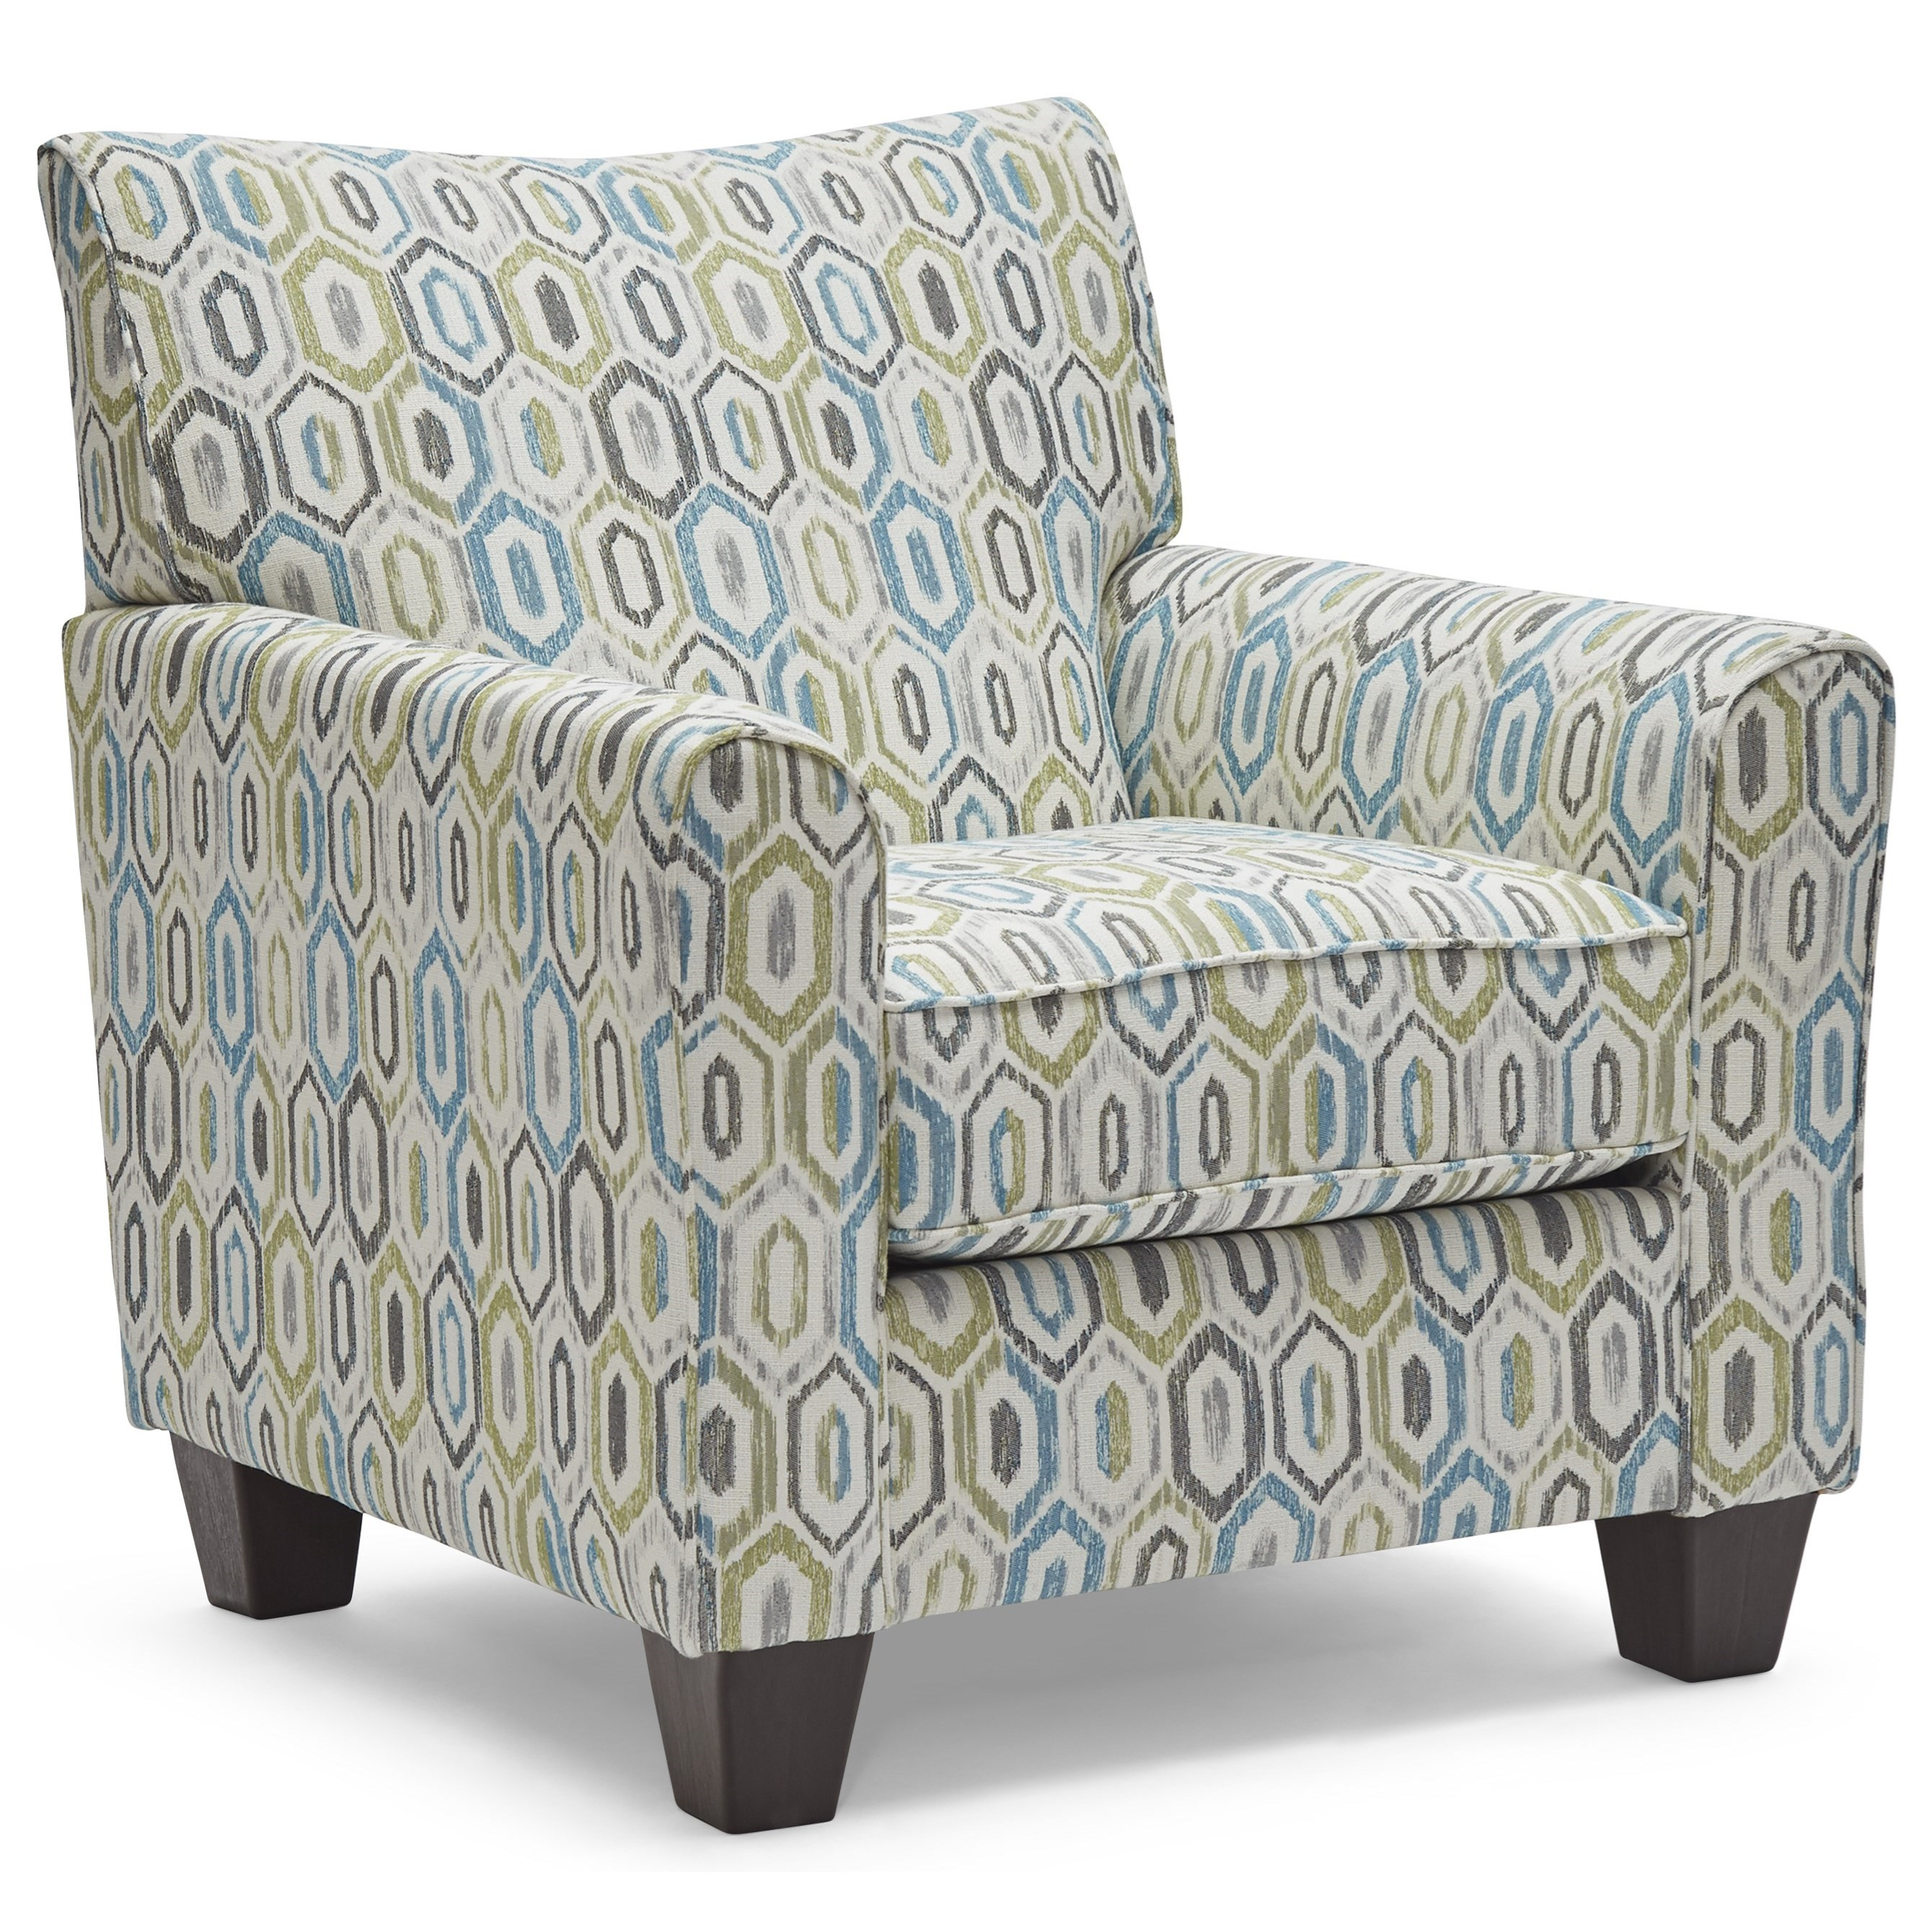 6547BR Accent Chair by United Furniture Industries at Bullard Furniture